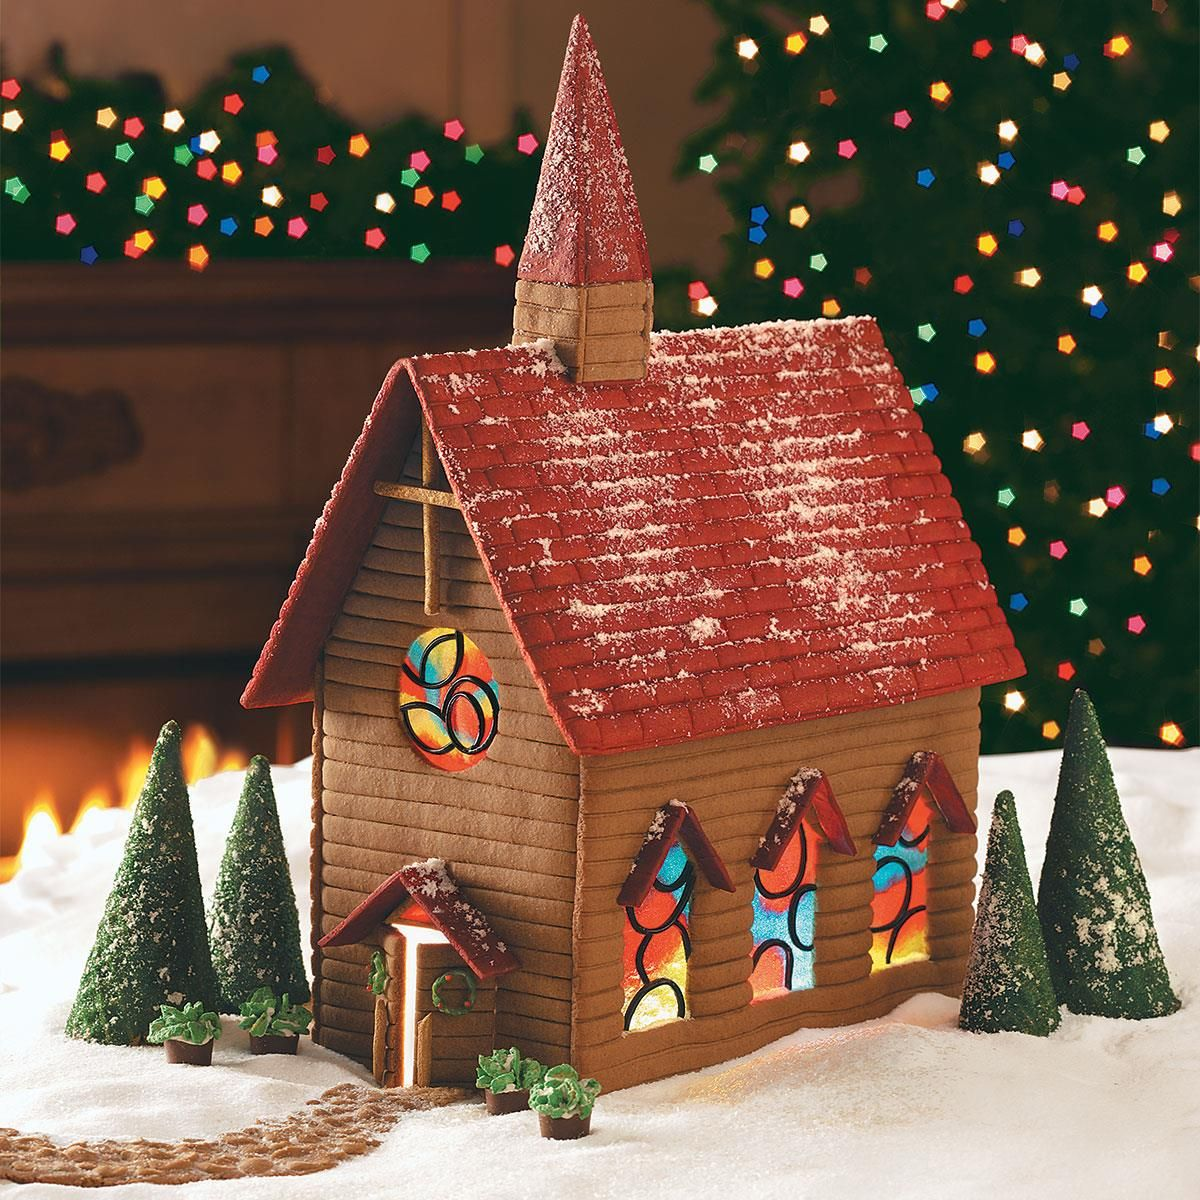 Gingerbread Country Church Recipe (With images